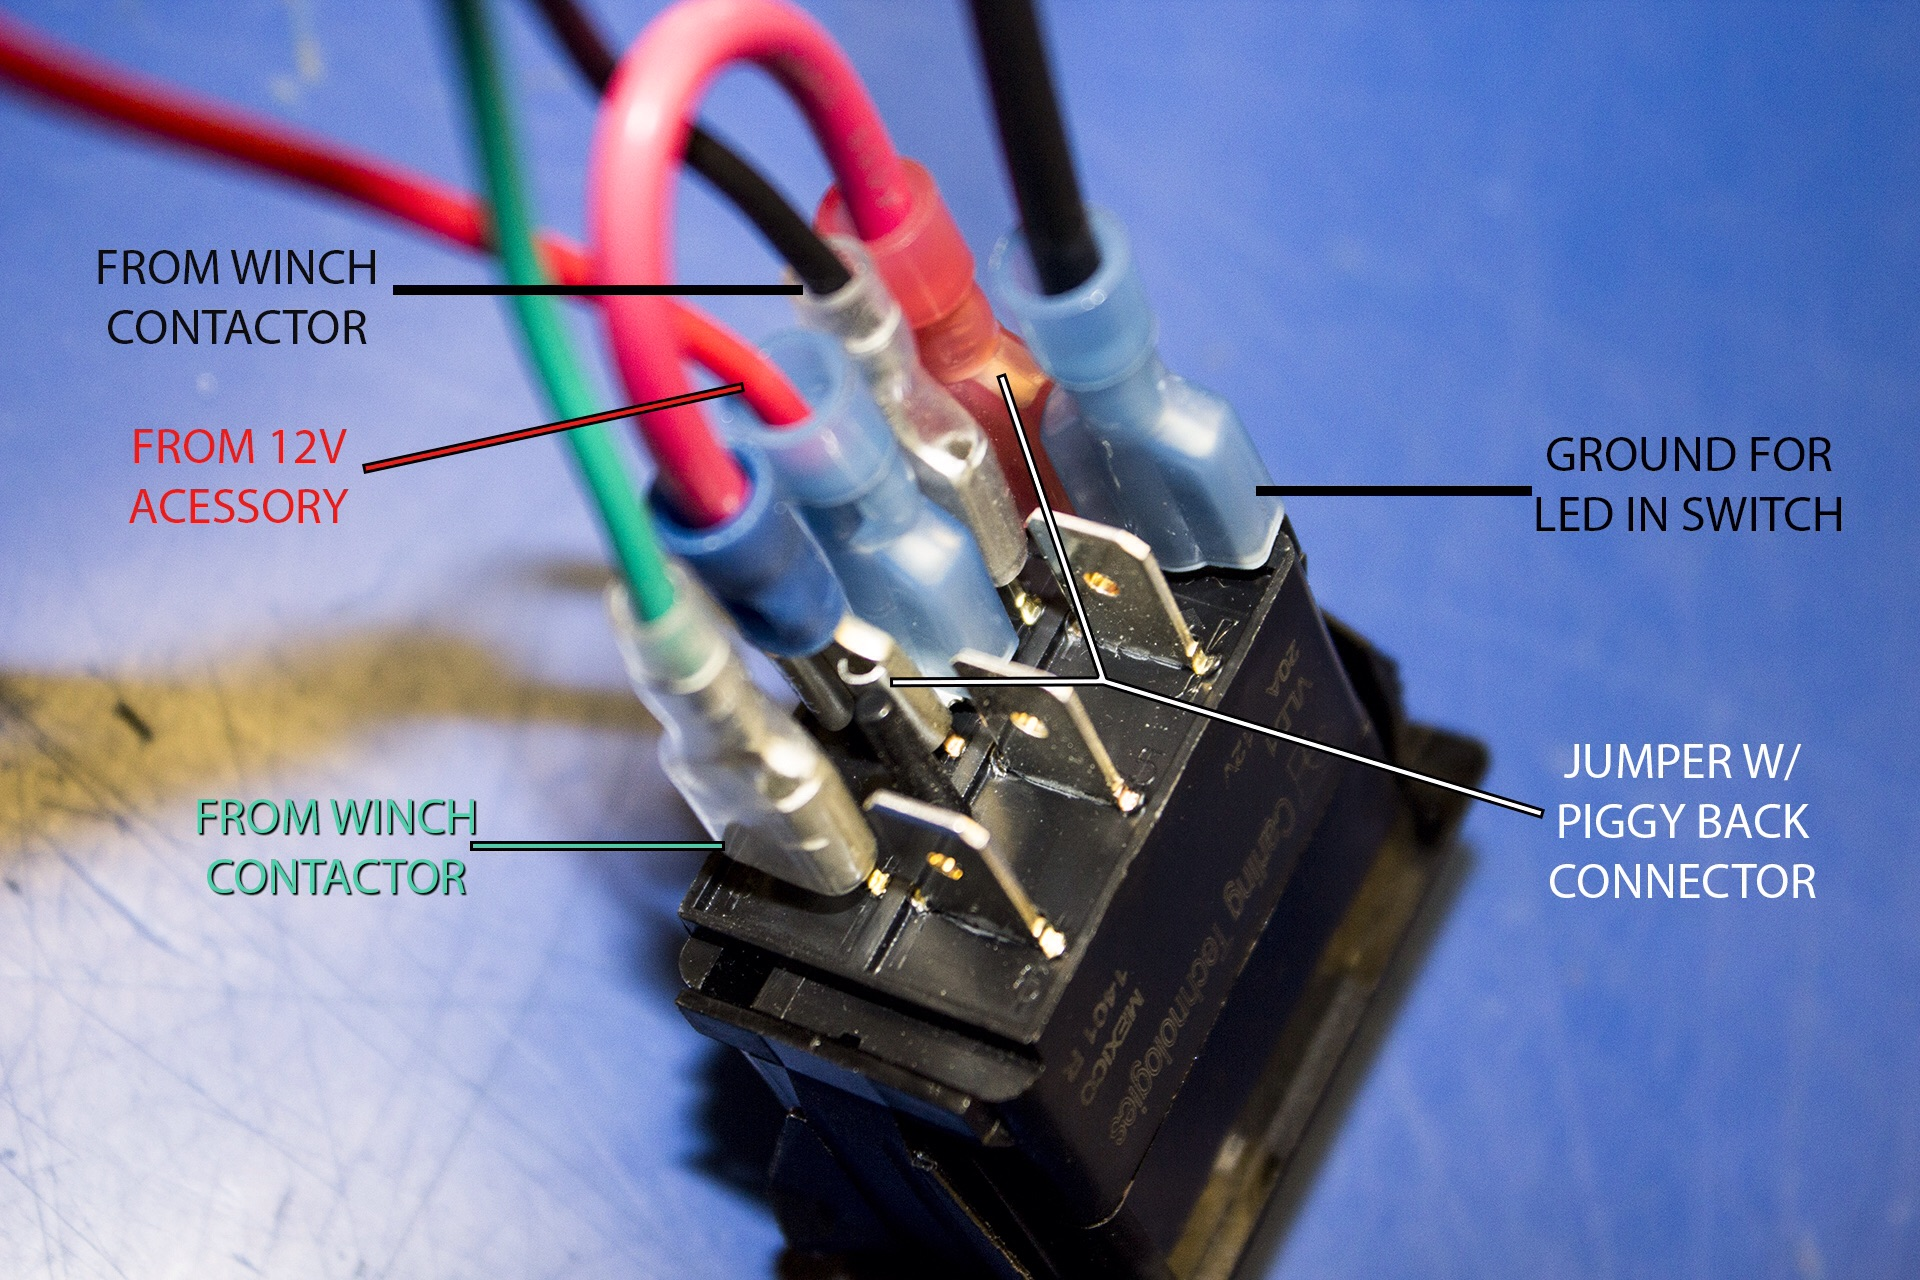 12v Lighted Toggle Switch Wiring Diagram